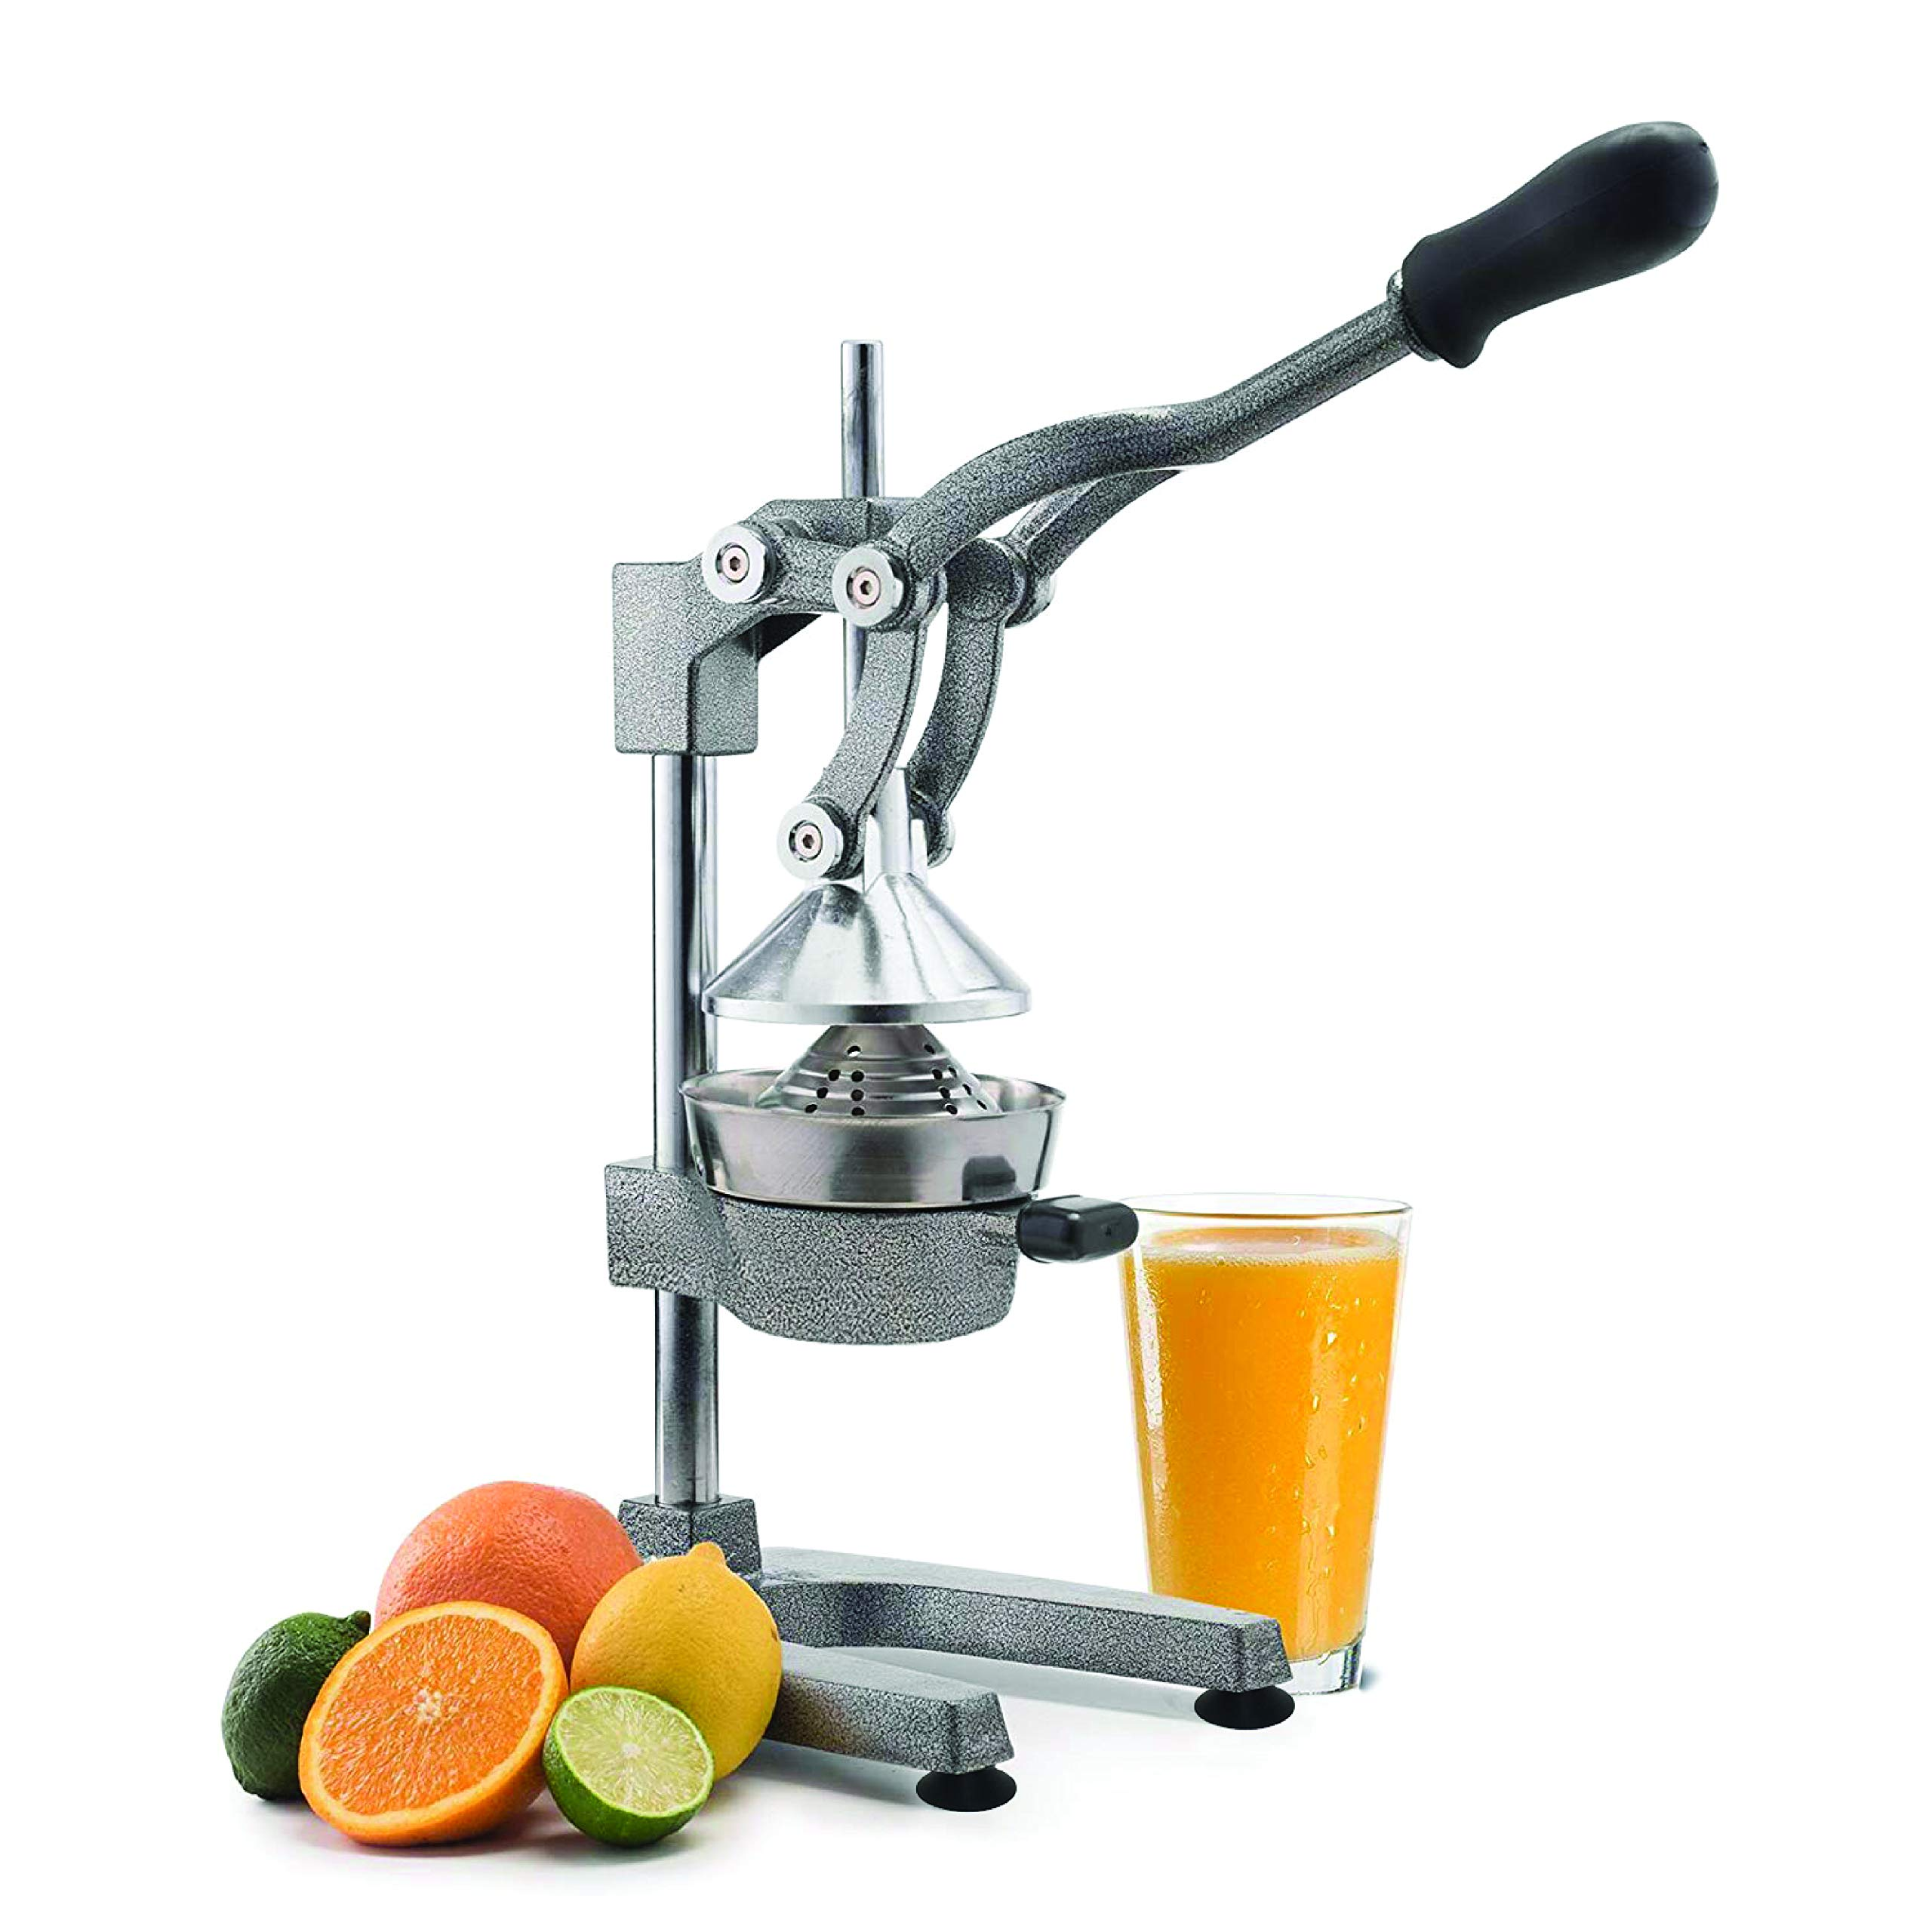 Manual Fruit Juicer - Commercial Grade Home Citrus Lever Squeezer for Oranges, Lemons, Limes, Grapefruits and More - Stainless Steel and Cast Iron - Non-skid Suction Cup Base - 15 Inch - by Vollum by Vollum